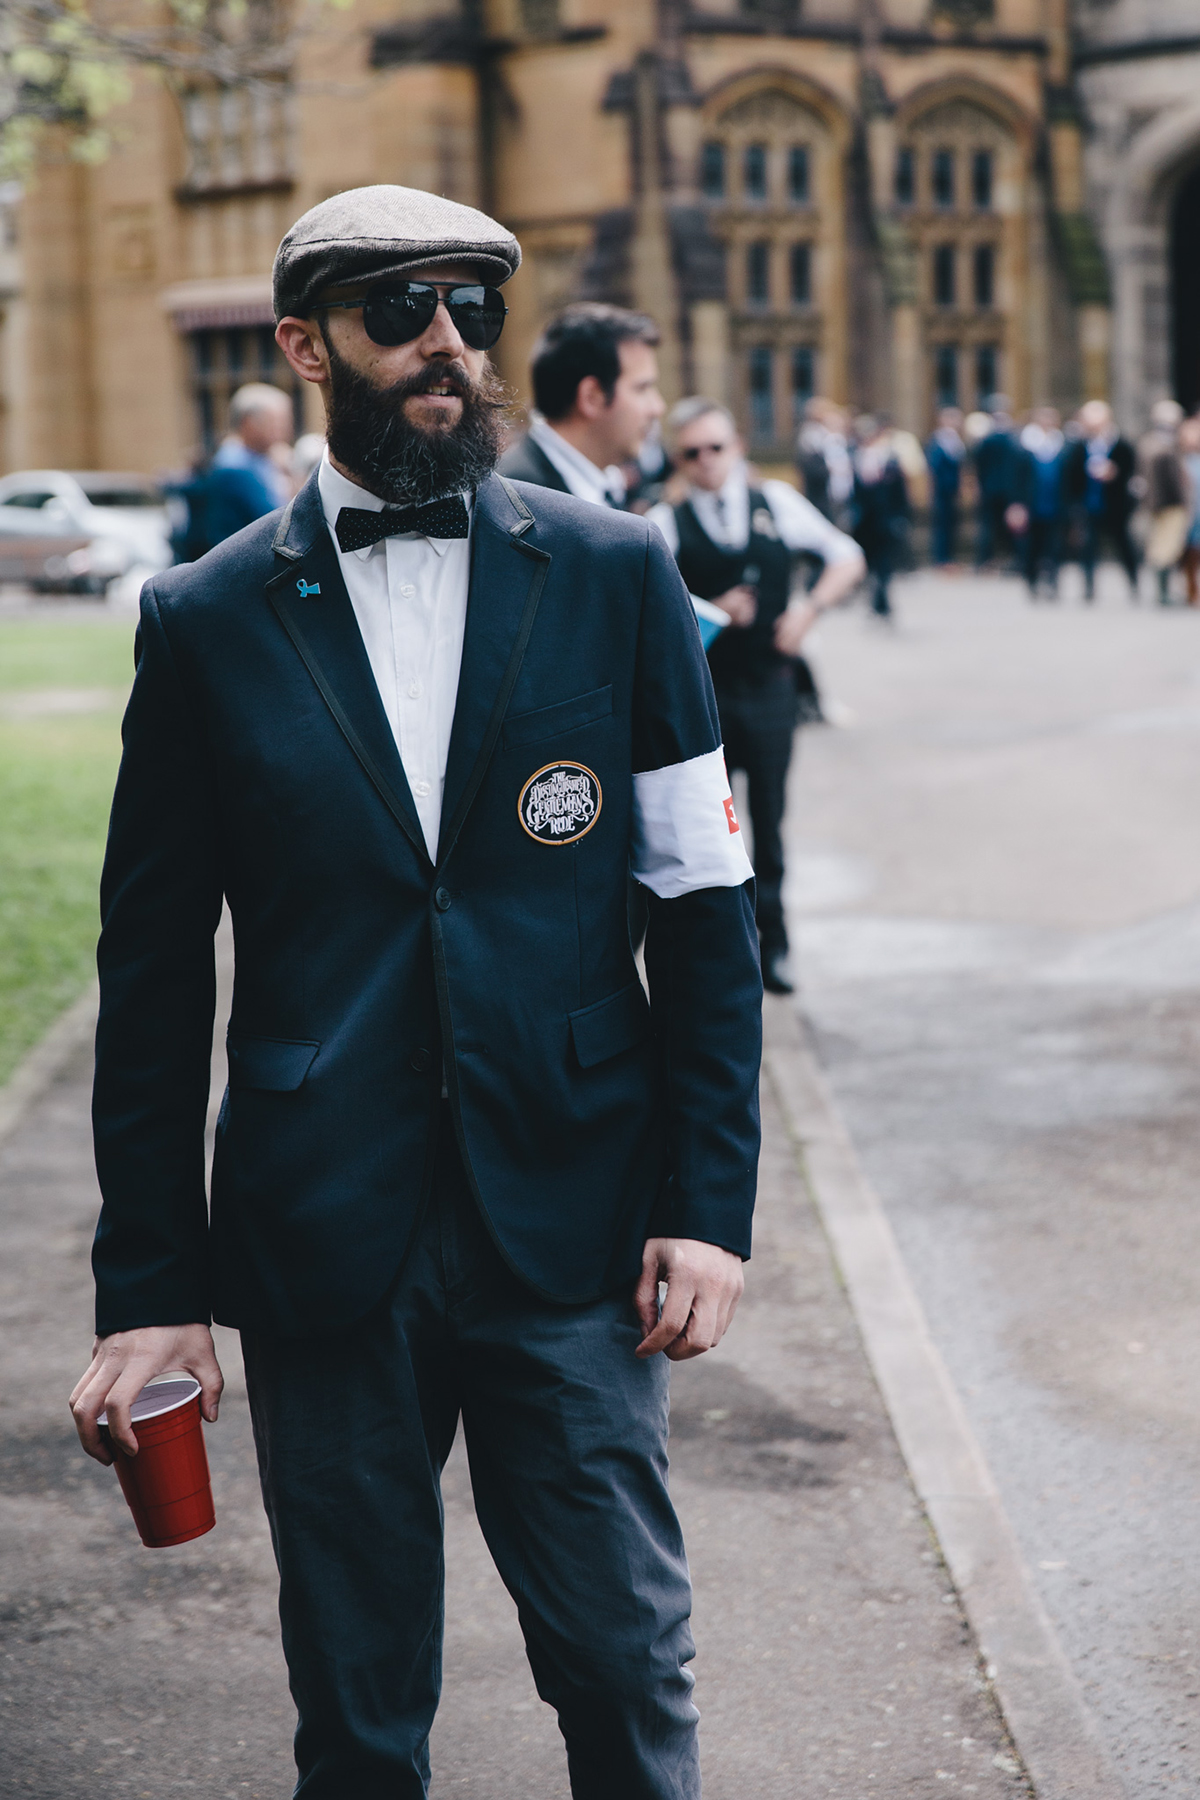 gentlemans_ride_sydney_0877